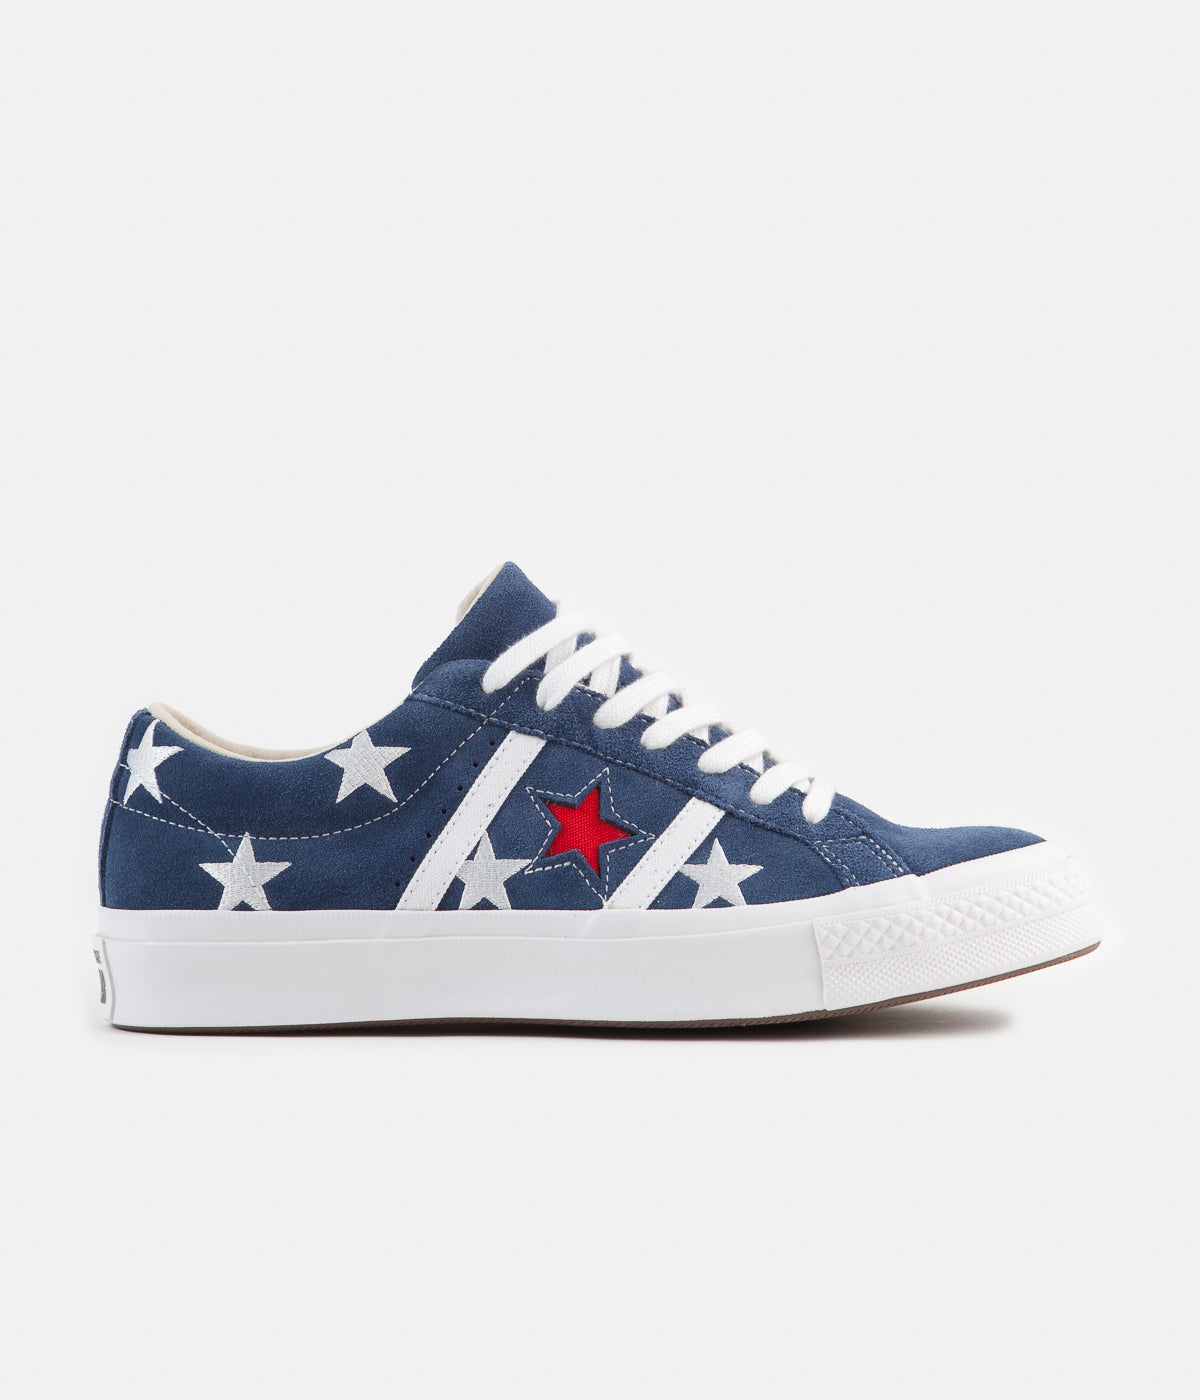 Converse One Star Academy Ox Archive Print Remixed Shoes - Navy / Enamel Red / White